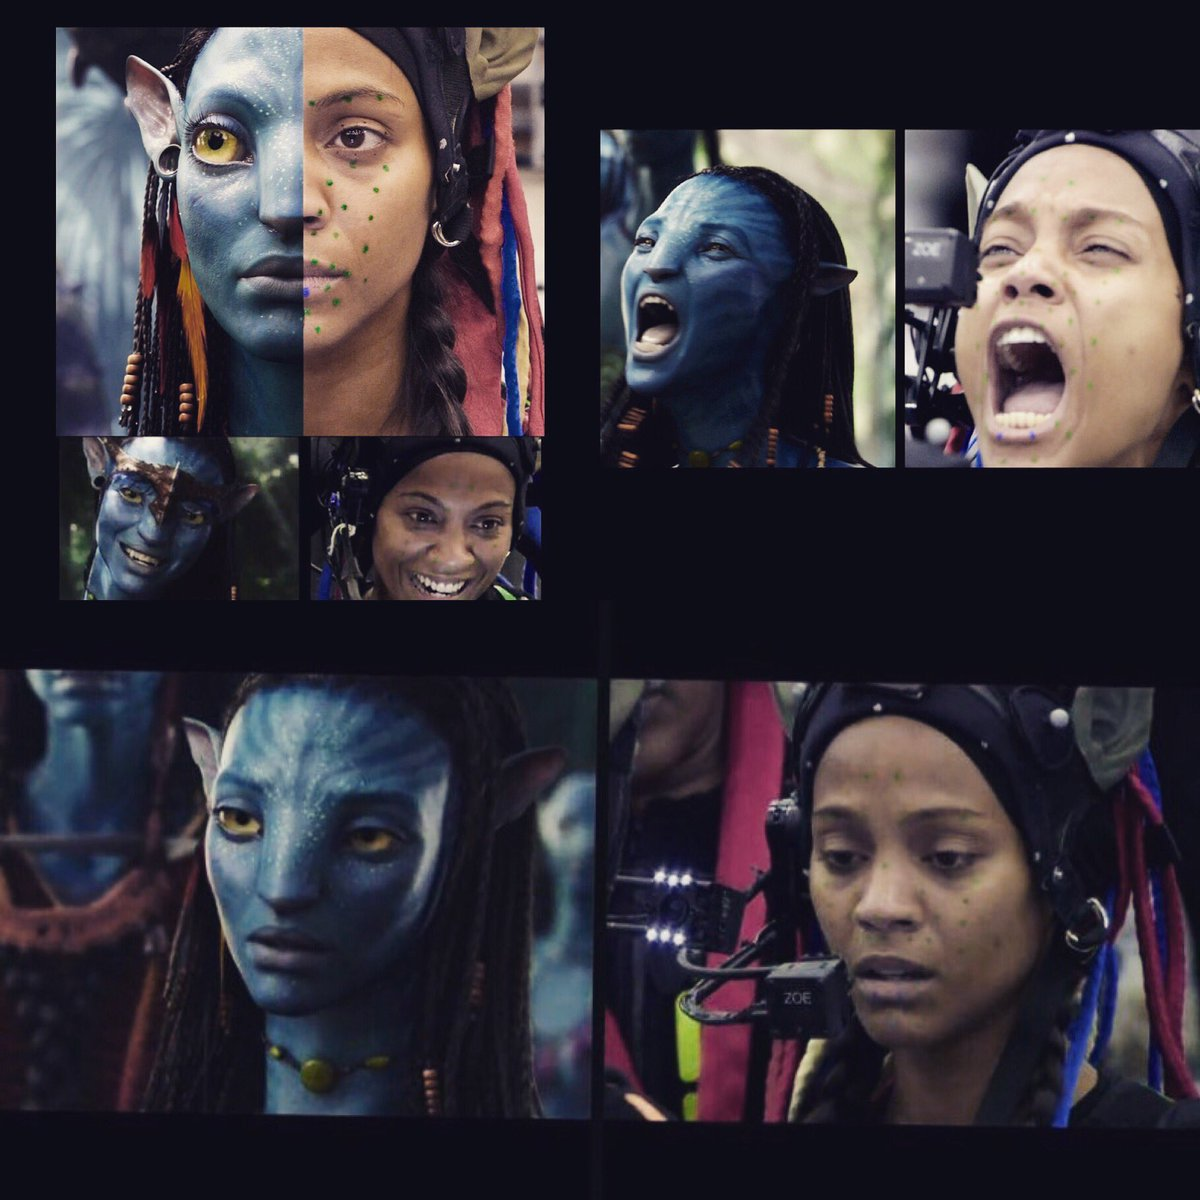 Zoe Saldana On Twitter Bts Of Filming Officialavatar